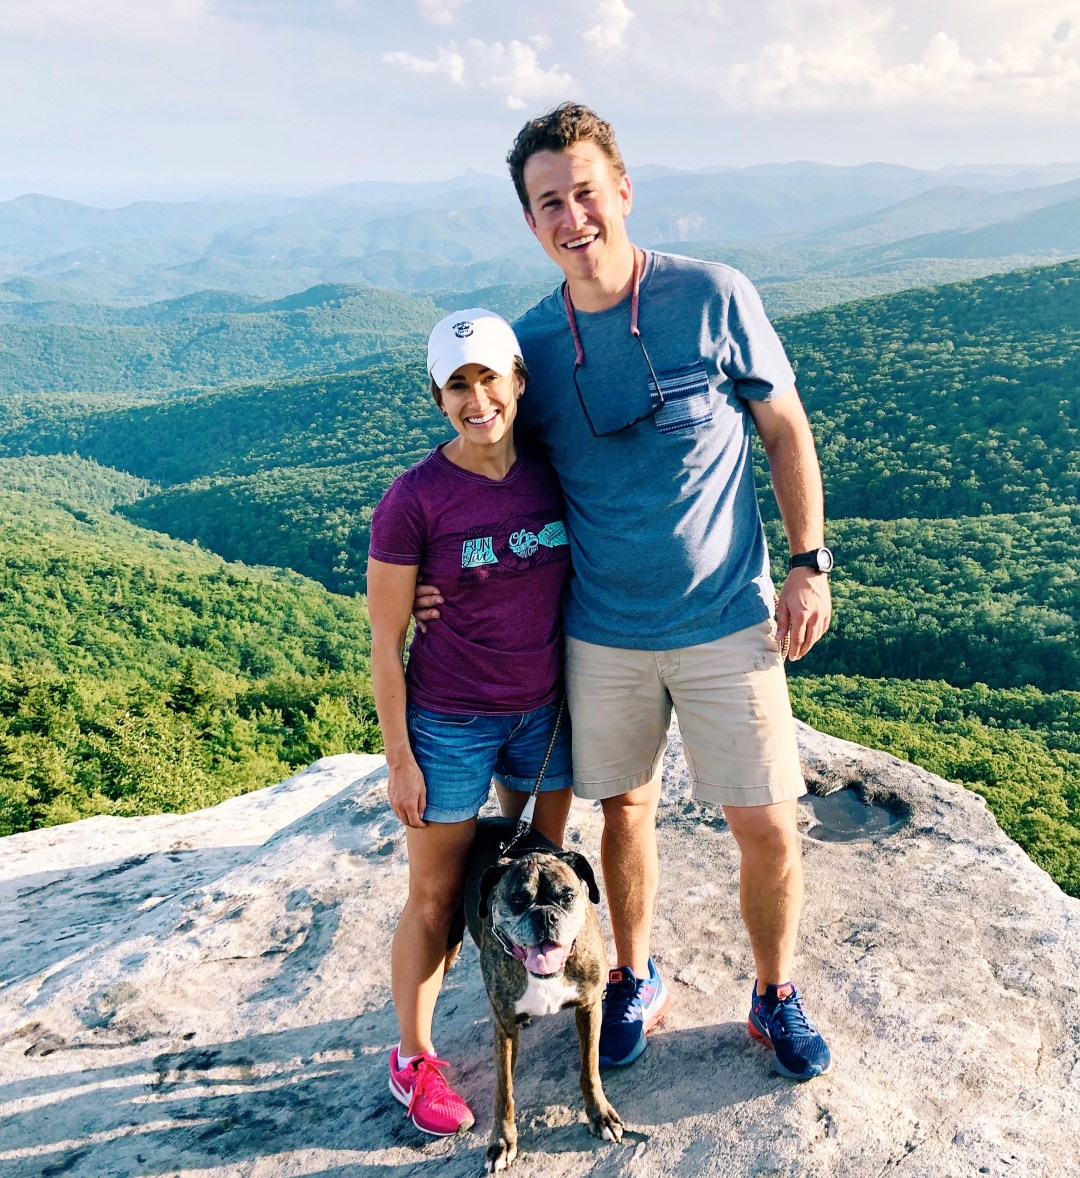 Boone and Blowing Rock trails